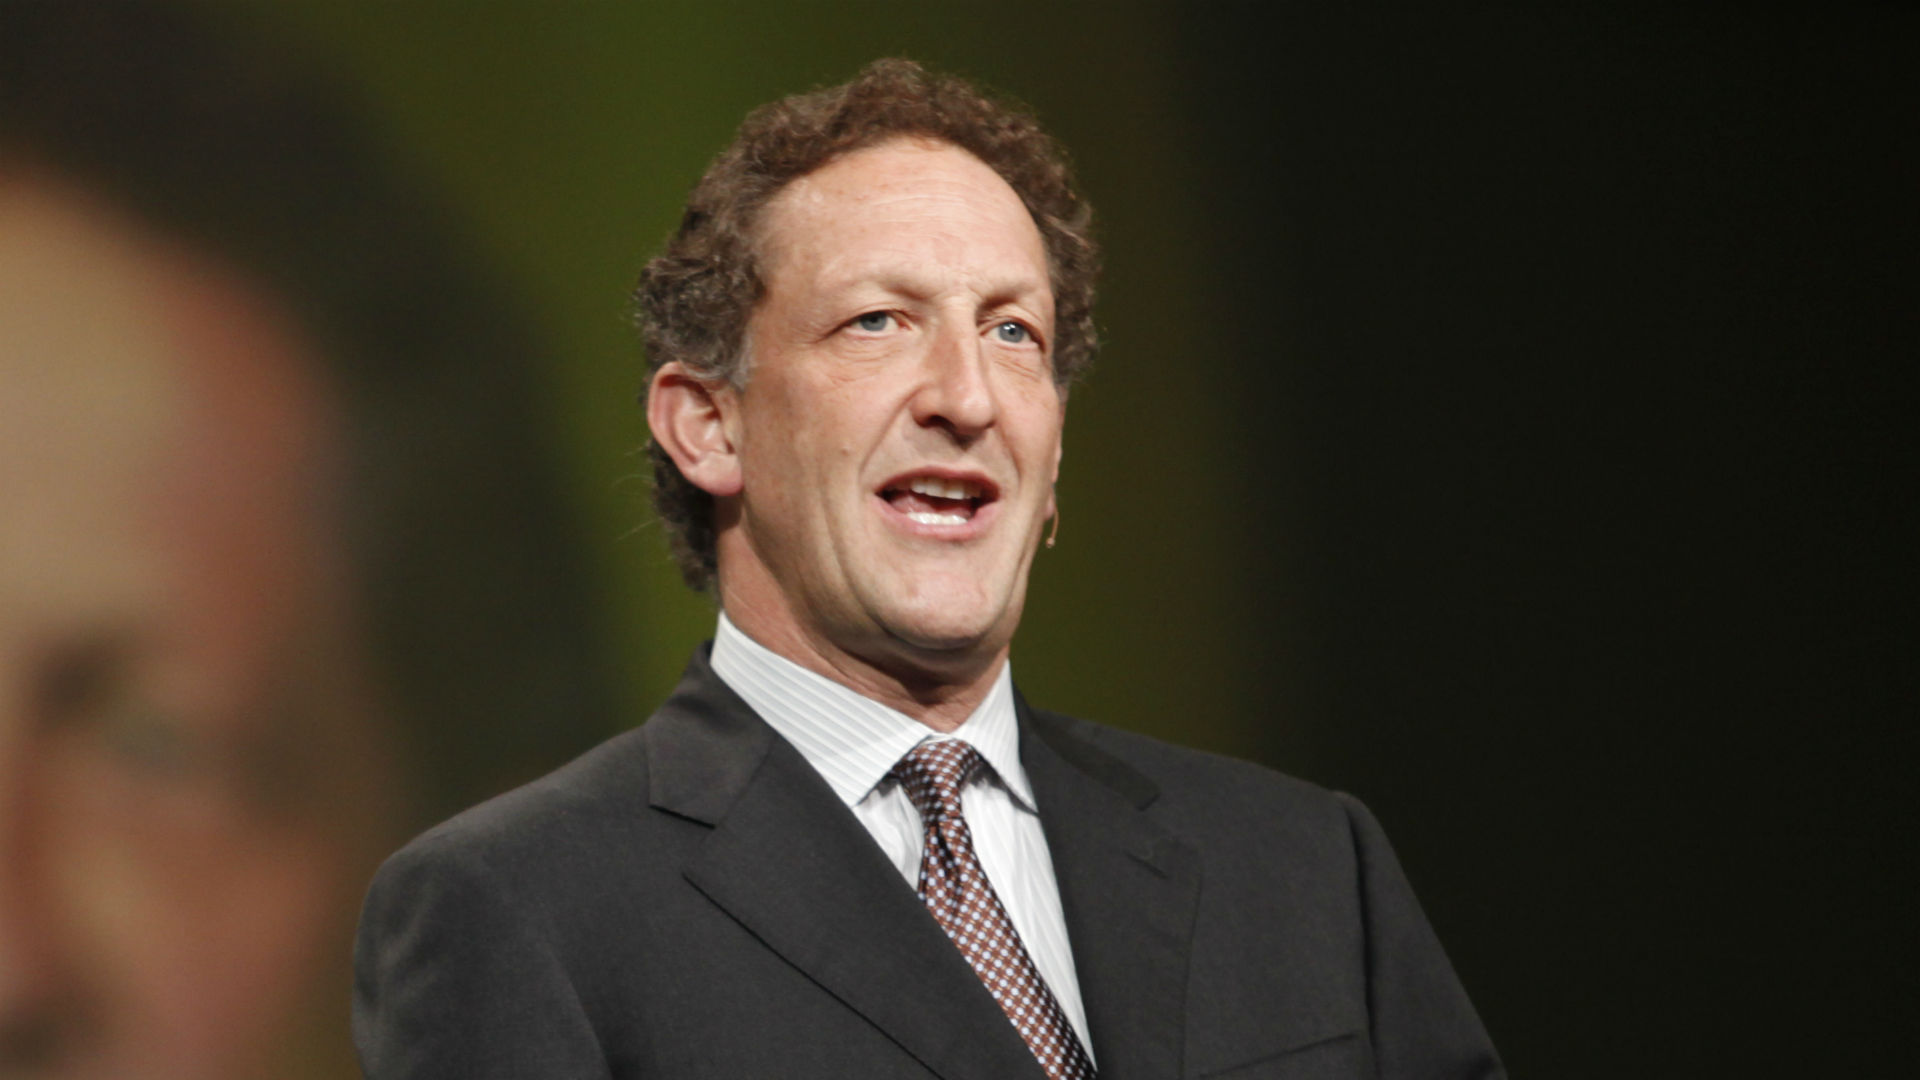 Giants CEO Larry Baer Involved In Public Altercation With His Wife